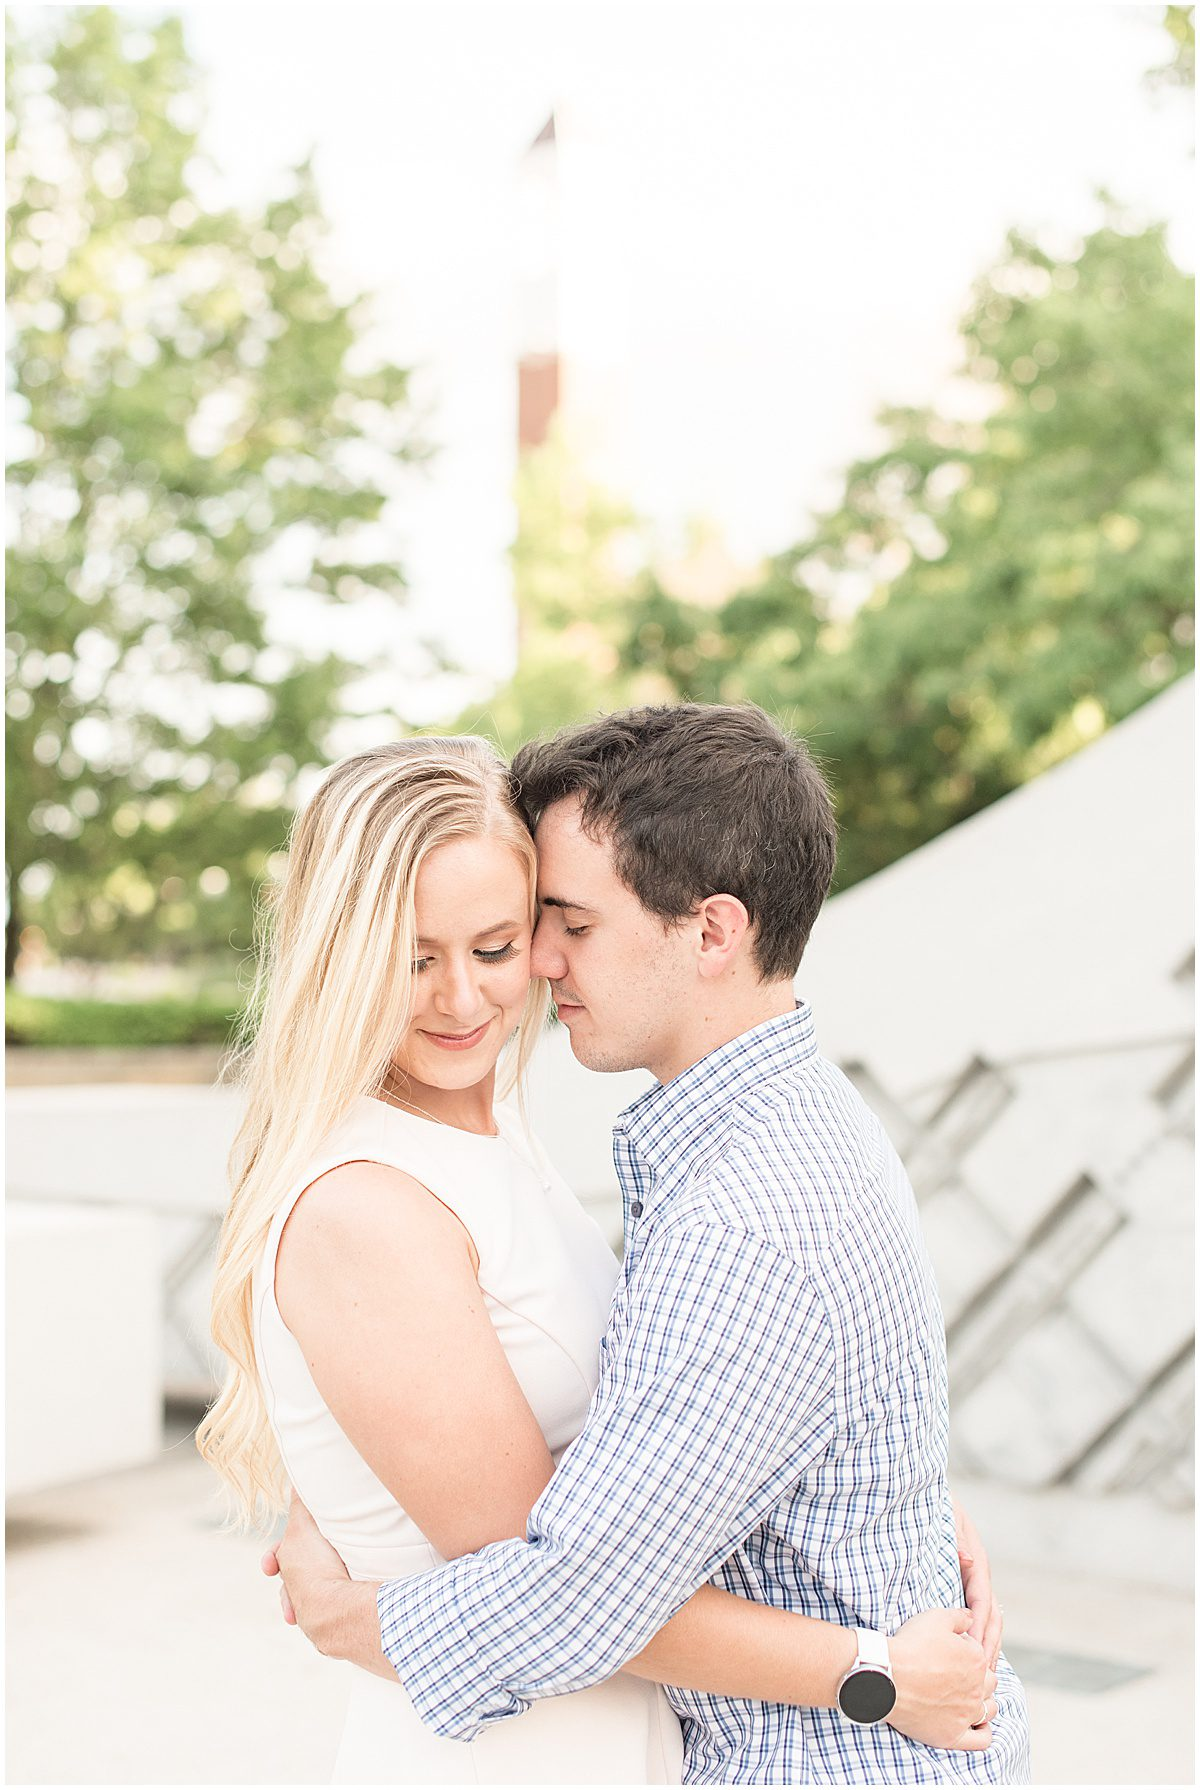 Engagement photos by Victoria Rayburn Photography—a Lafayette, Indiana wedding photographer